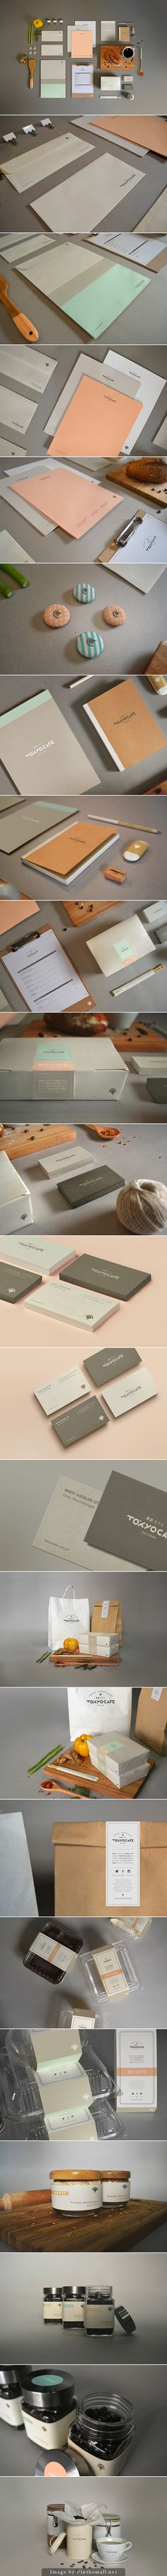 Tokyo Café branding stationary corporate identity logo menu packaging business card letterhead label sticker notebook minimal papercraft cardboard paper pastel colors coffee